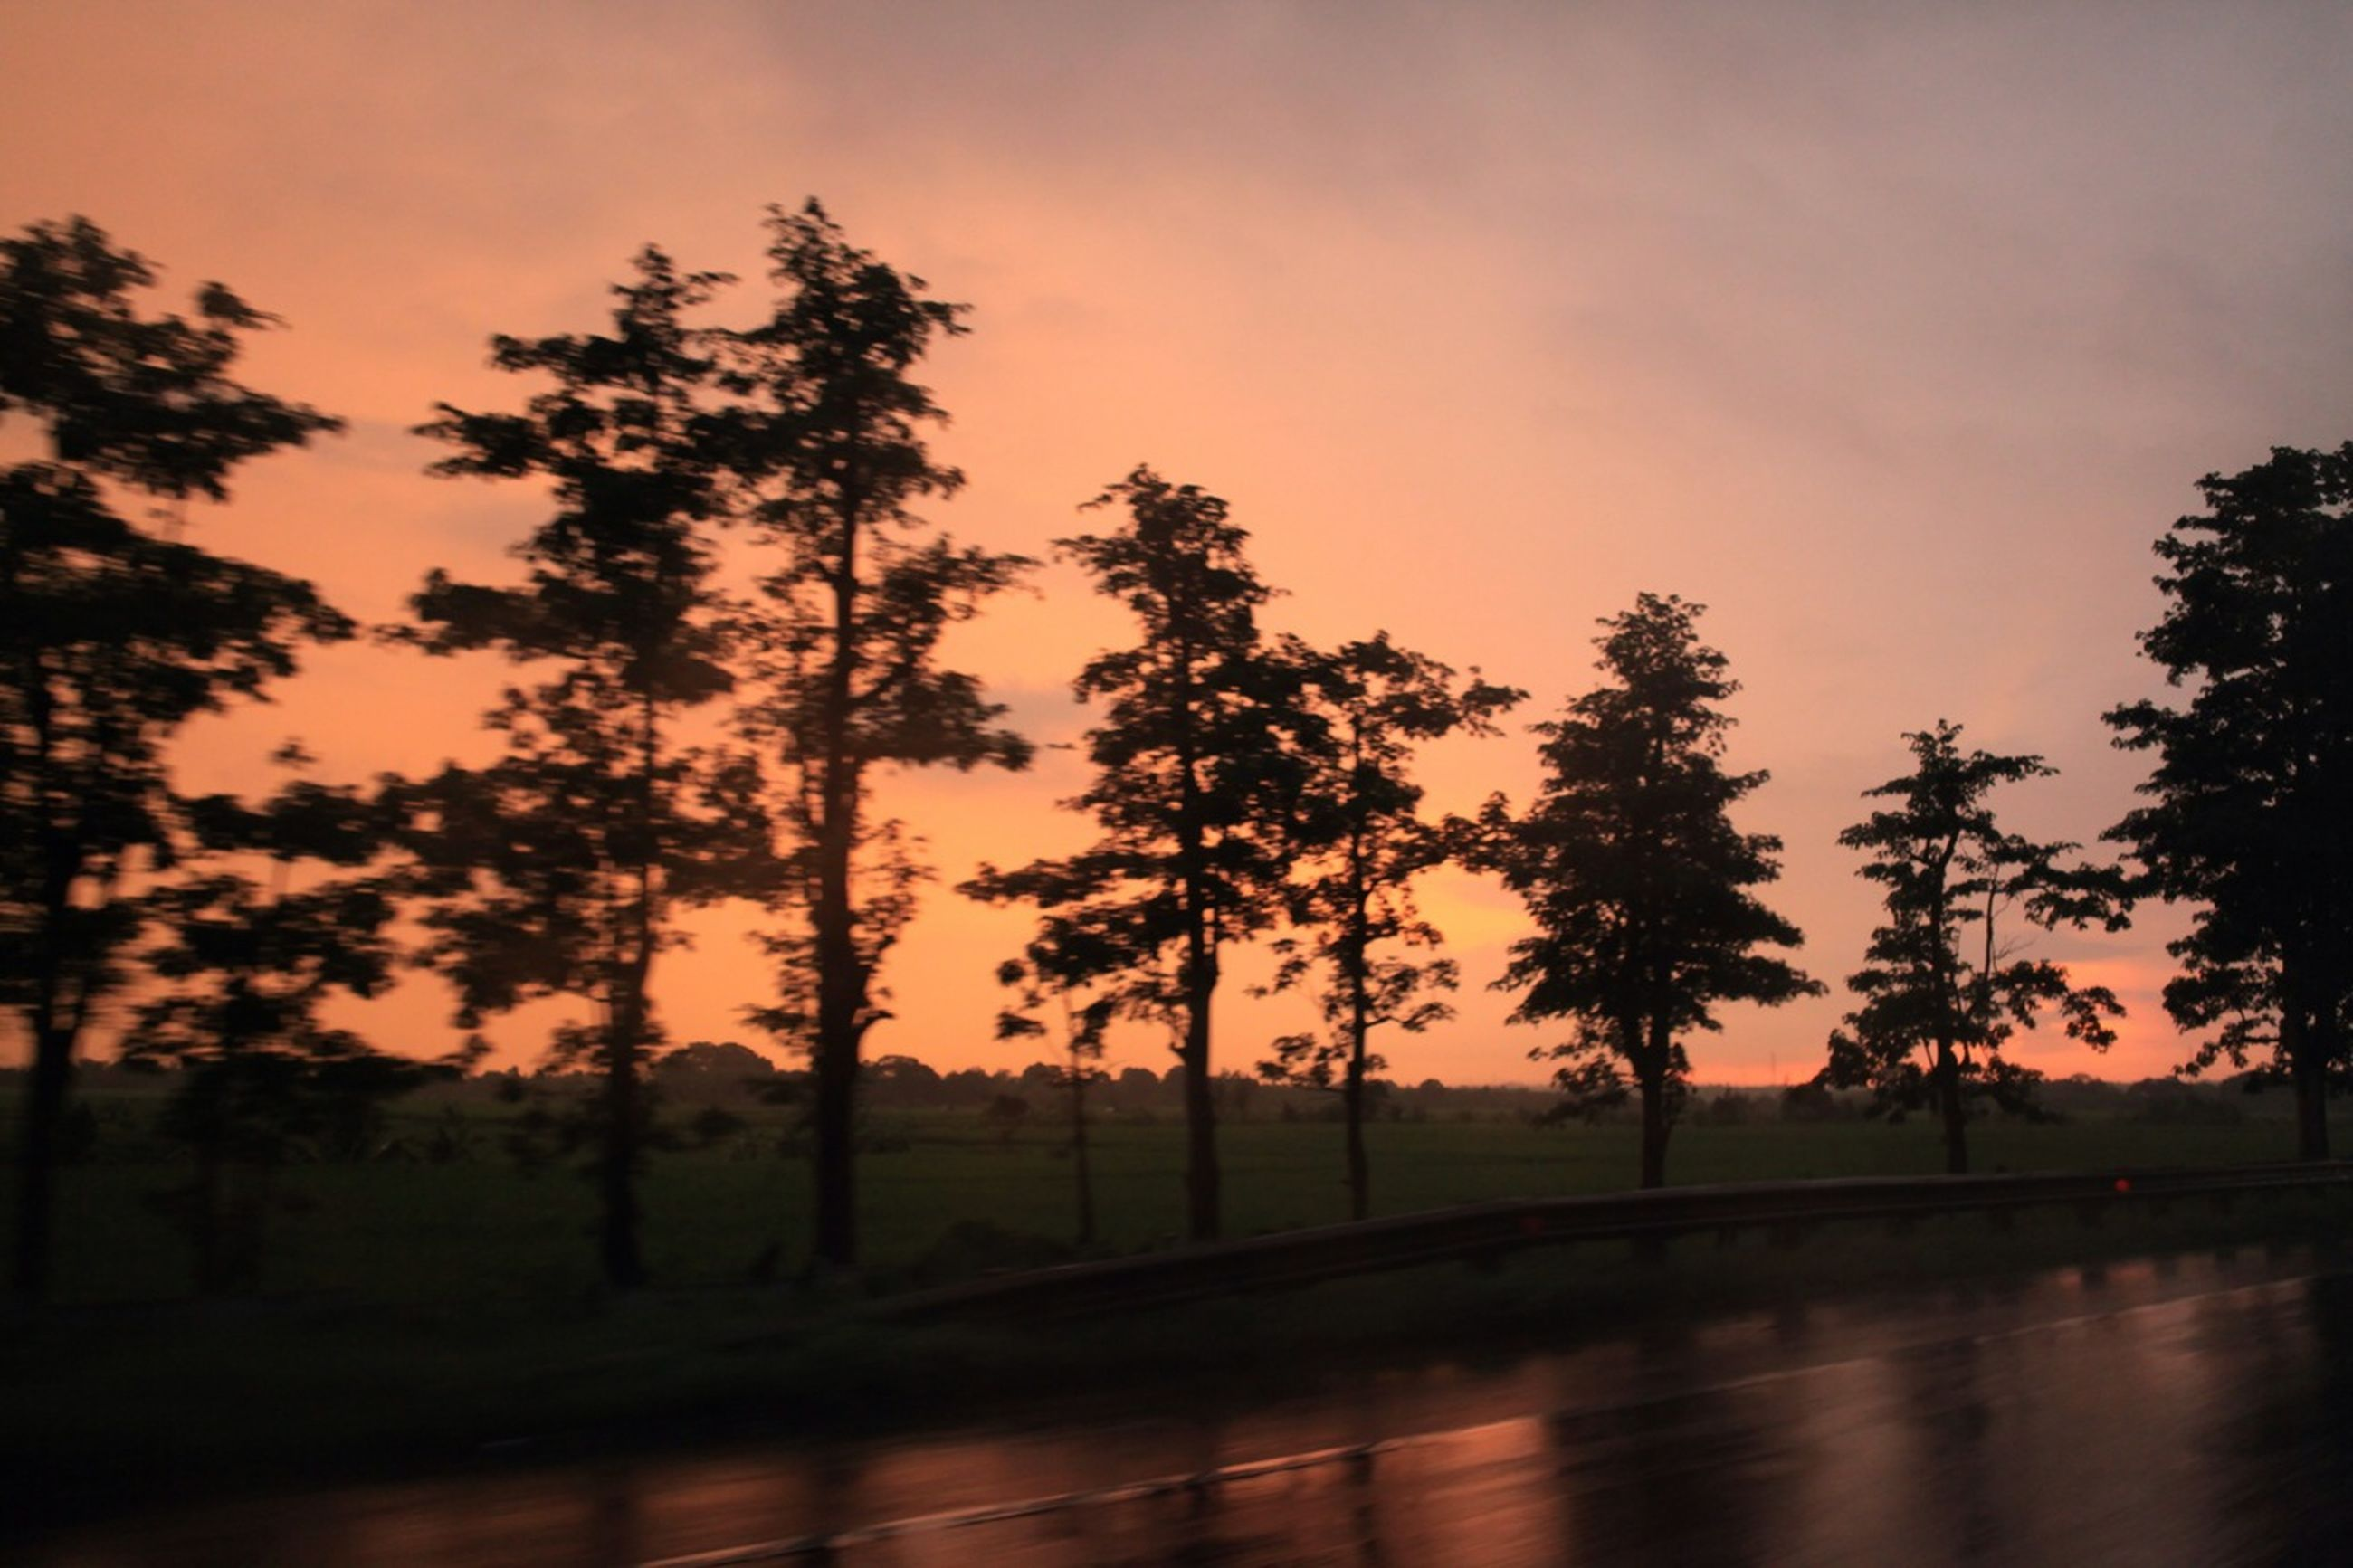 tree, sunset, silhouette, tranquility, tranquil scene, sky, beauty in nature, scenics, nature, growth, palm tree, landscape, idyllic, orange color, road, sun, outdoors, no people, field, sunlight